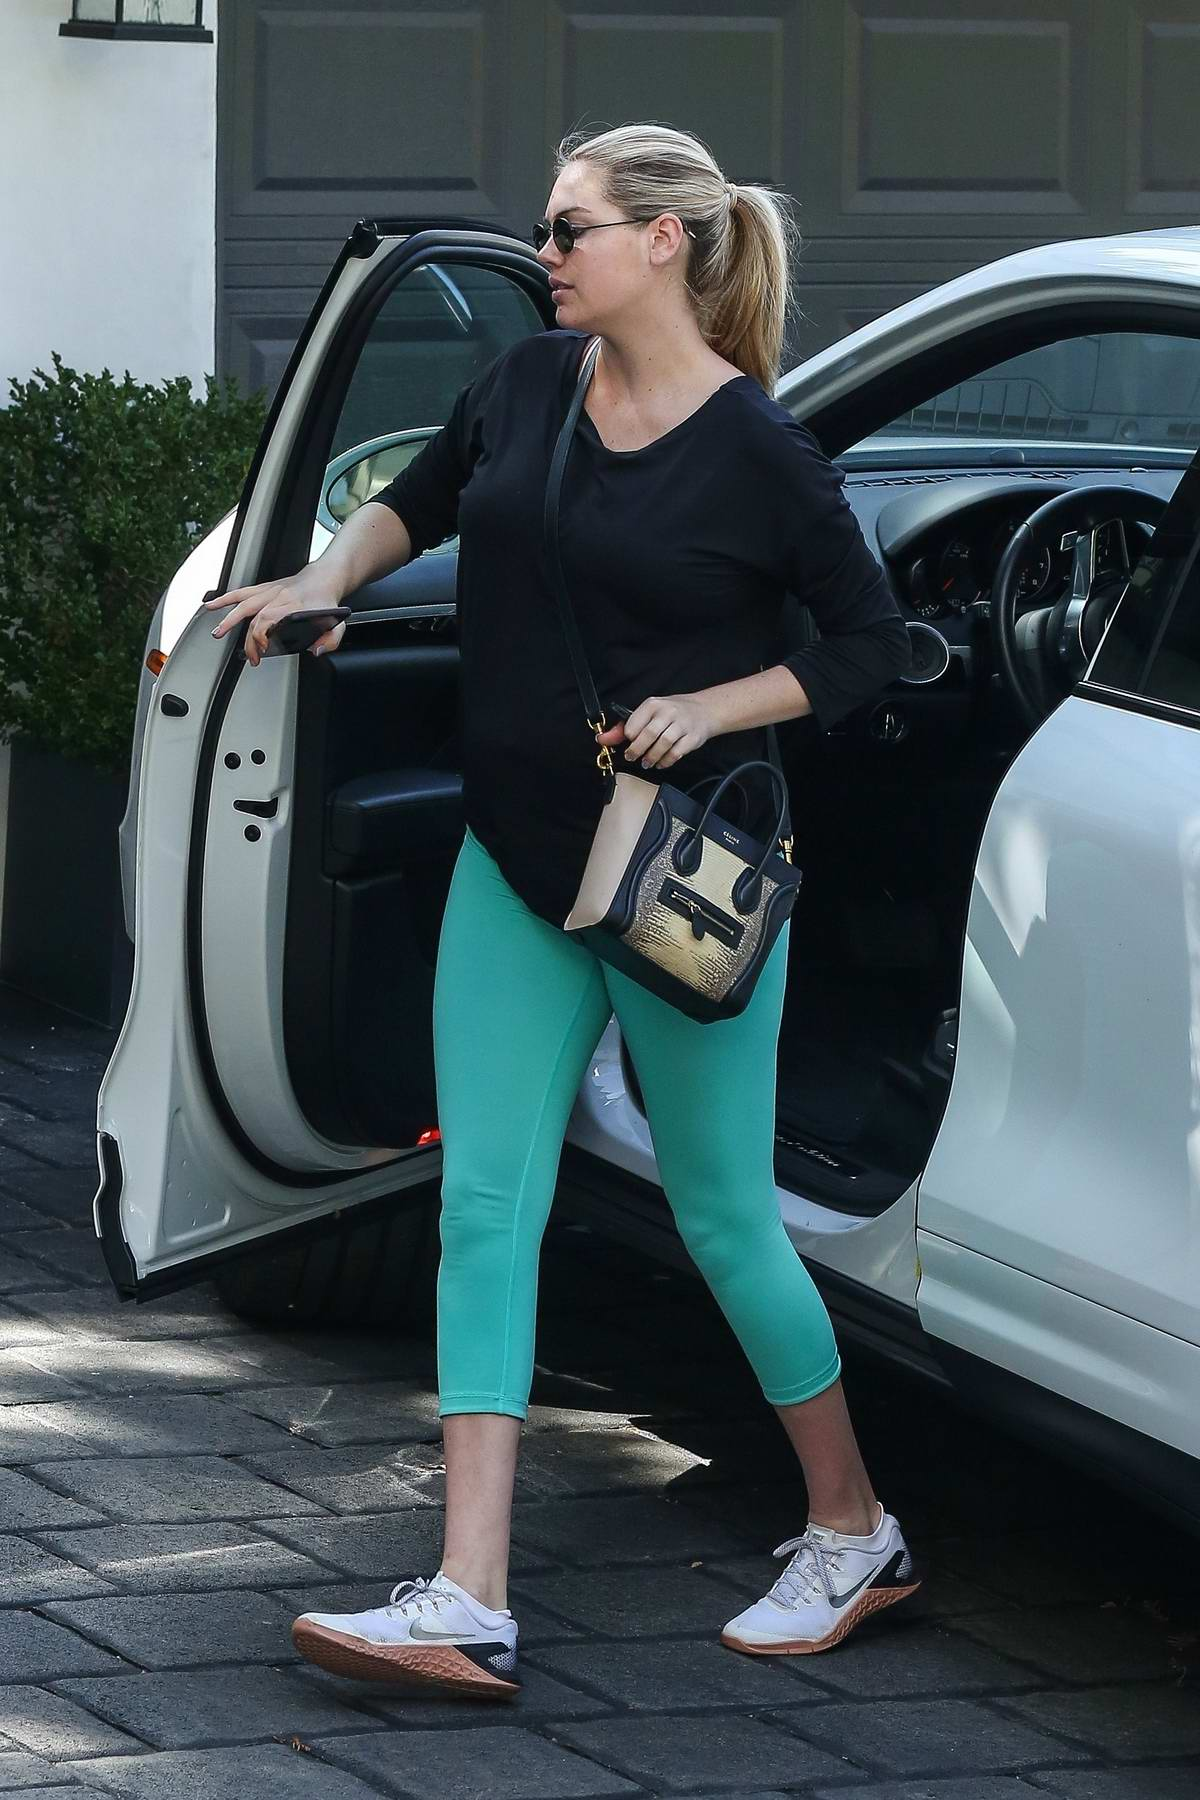 Kate Upton hits the gym in a black top and coral green leggings in Los Angeles